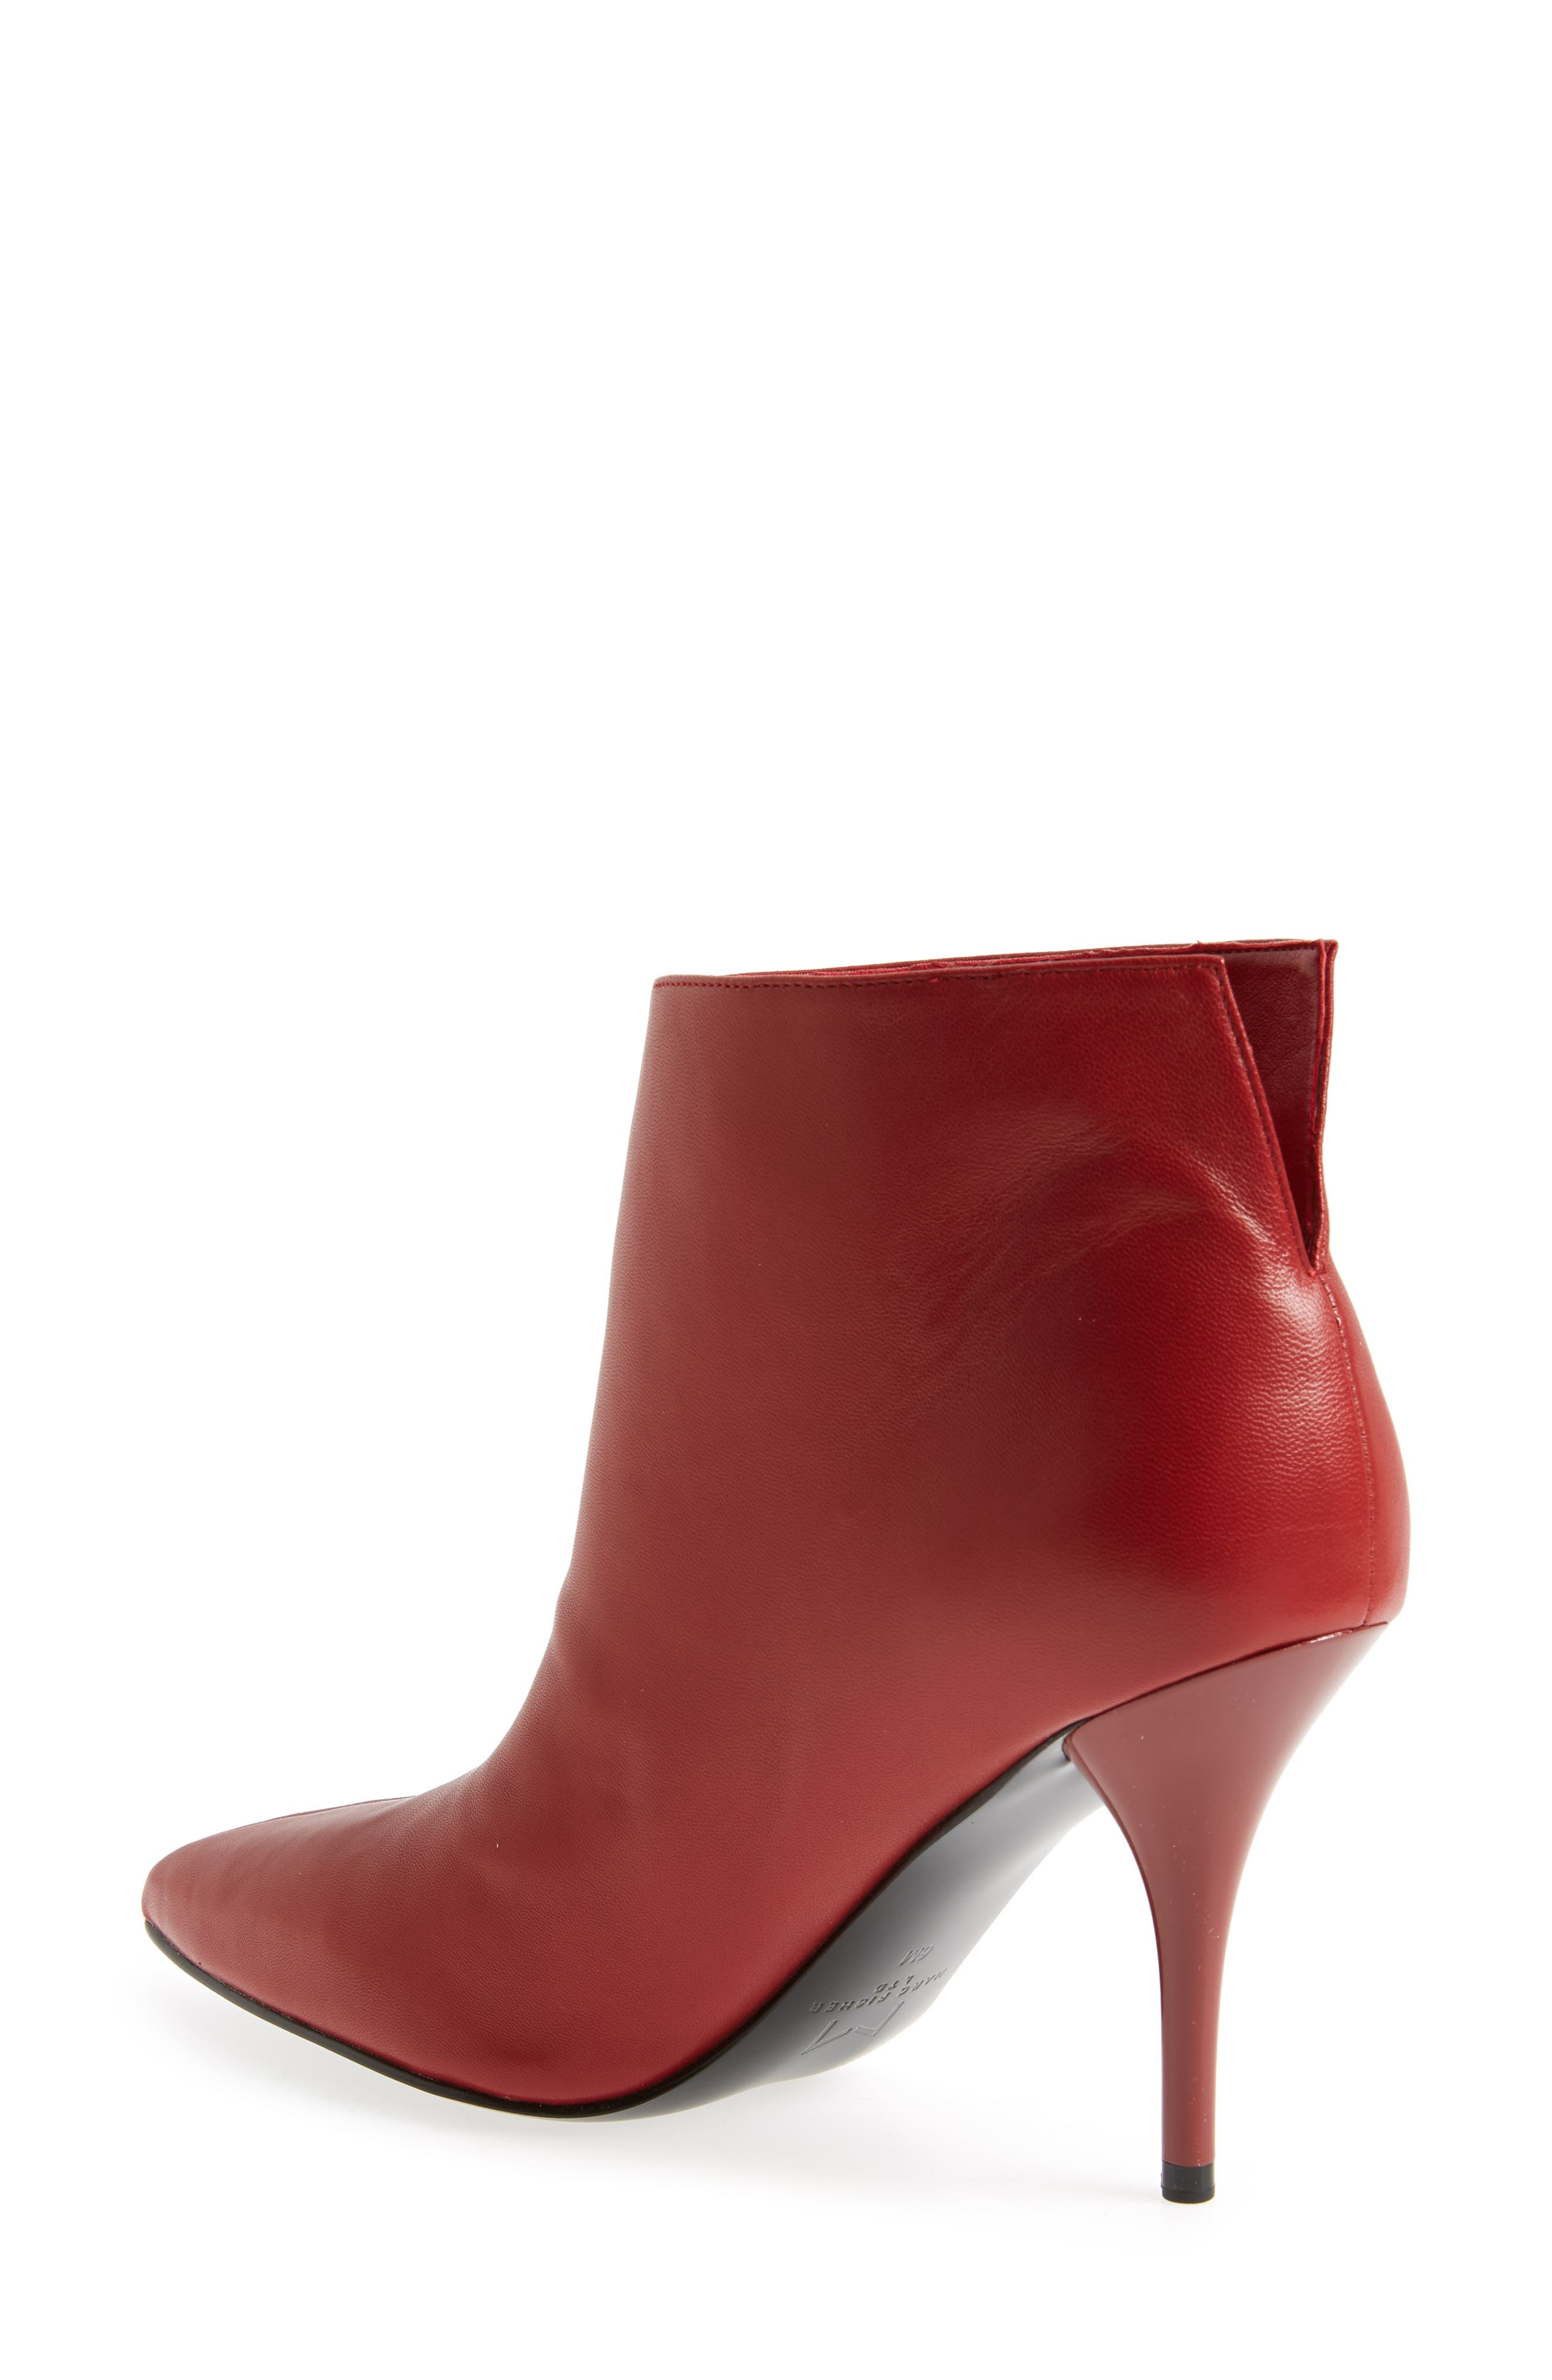 MARC FISHER LTD, Fenet Pointy Toe Bootie, Alternate thumbnail 2, color, RED LEATHER